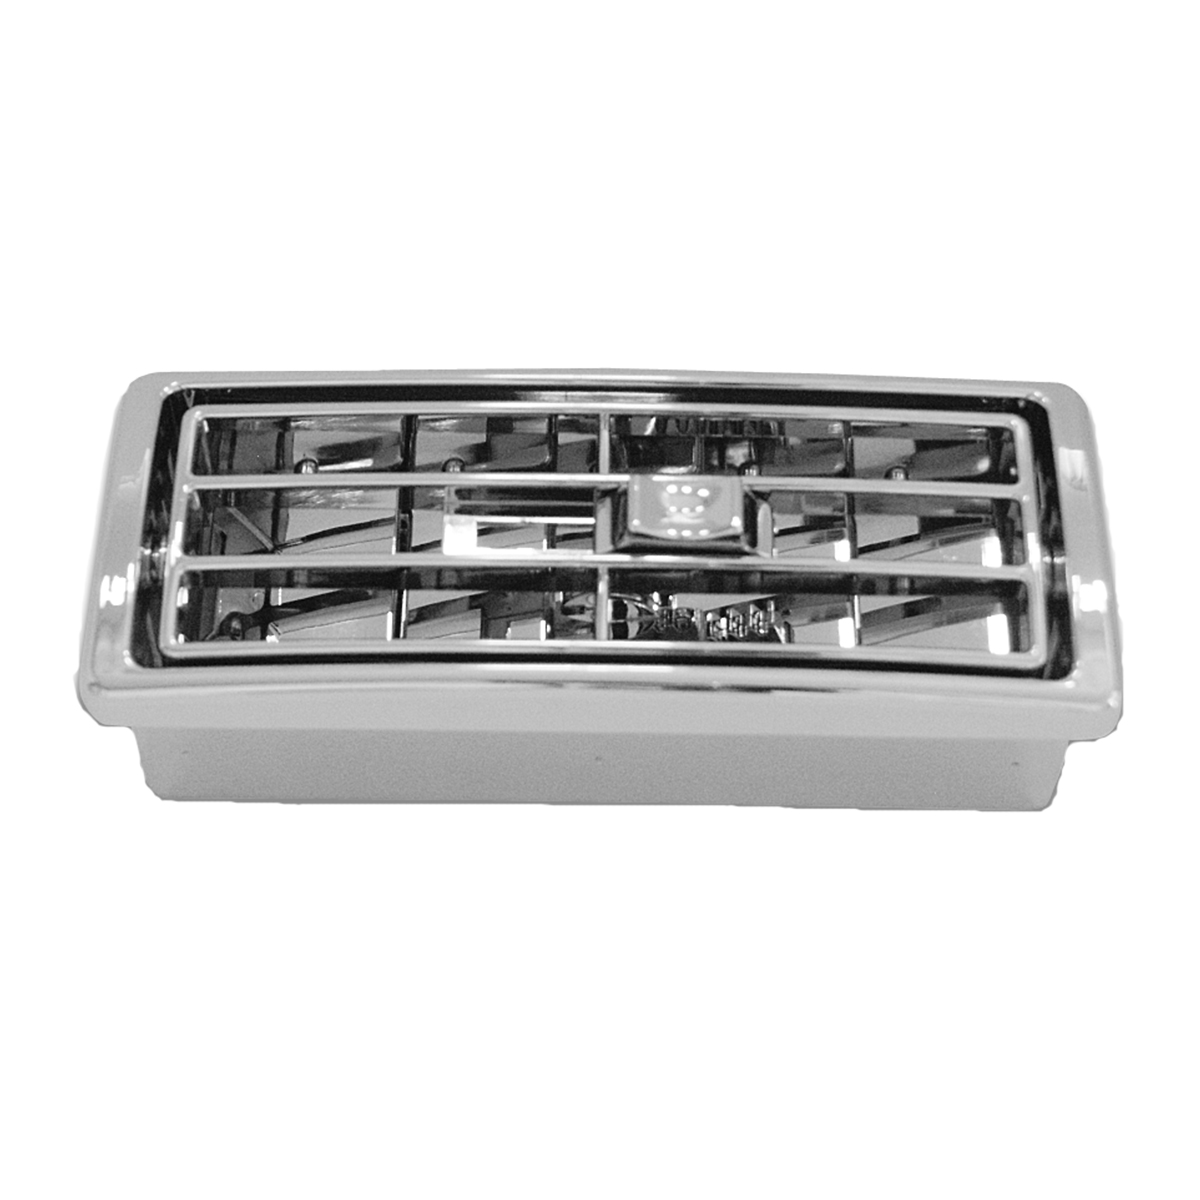 68408 Chrome Plastic Center A/C Vent for KW